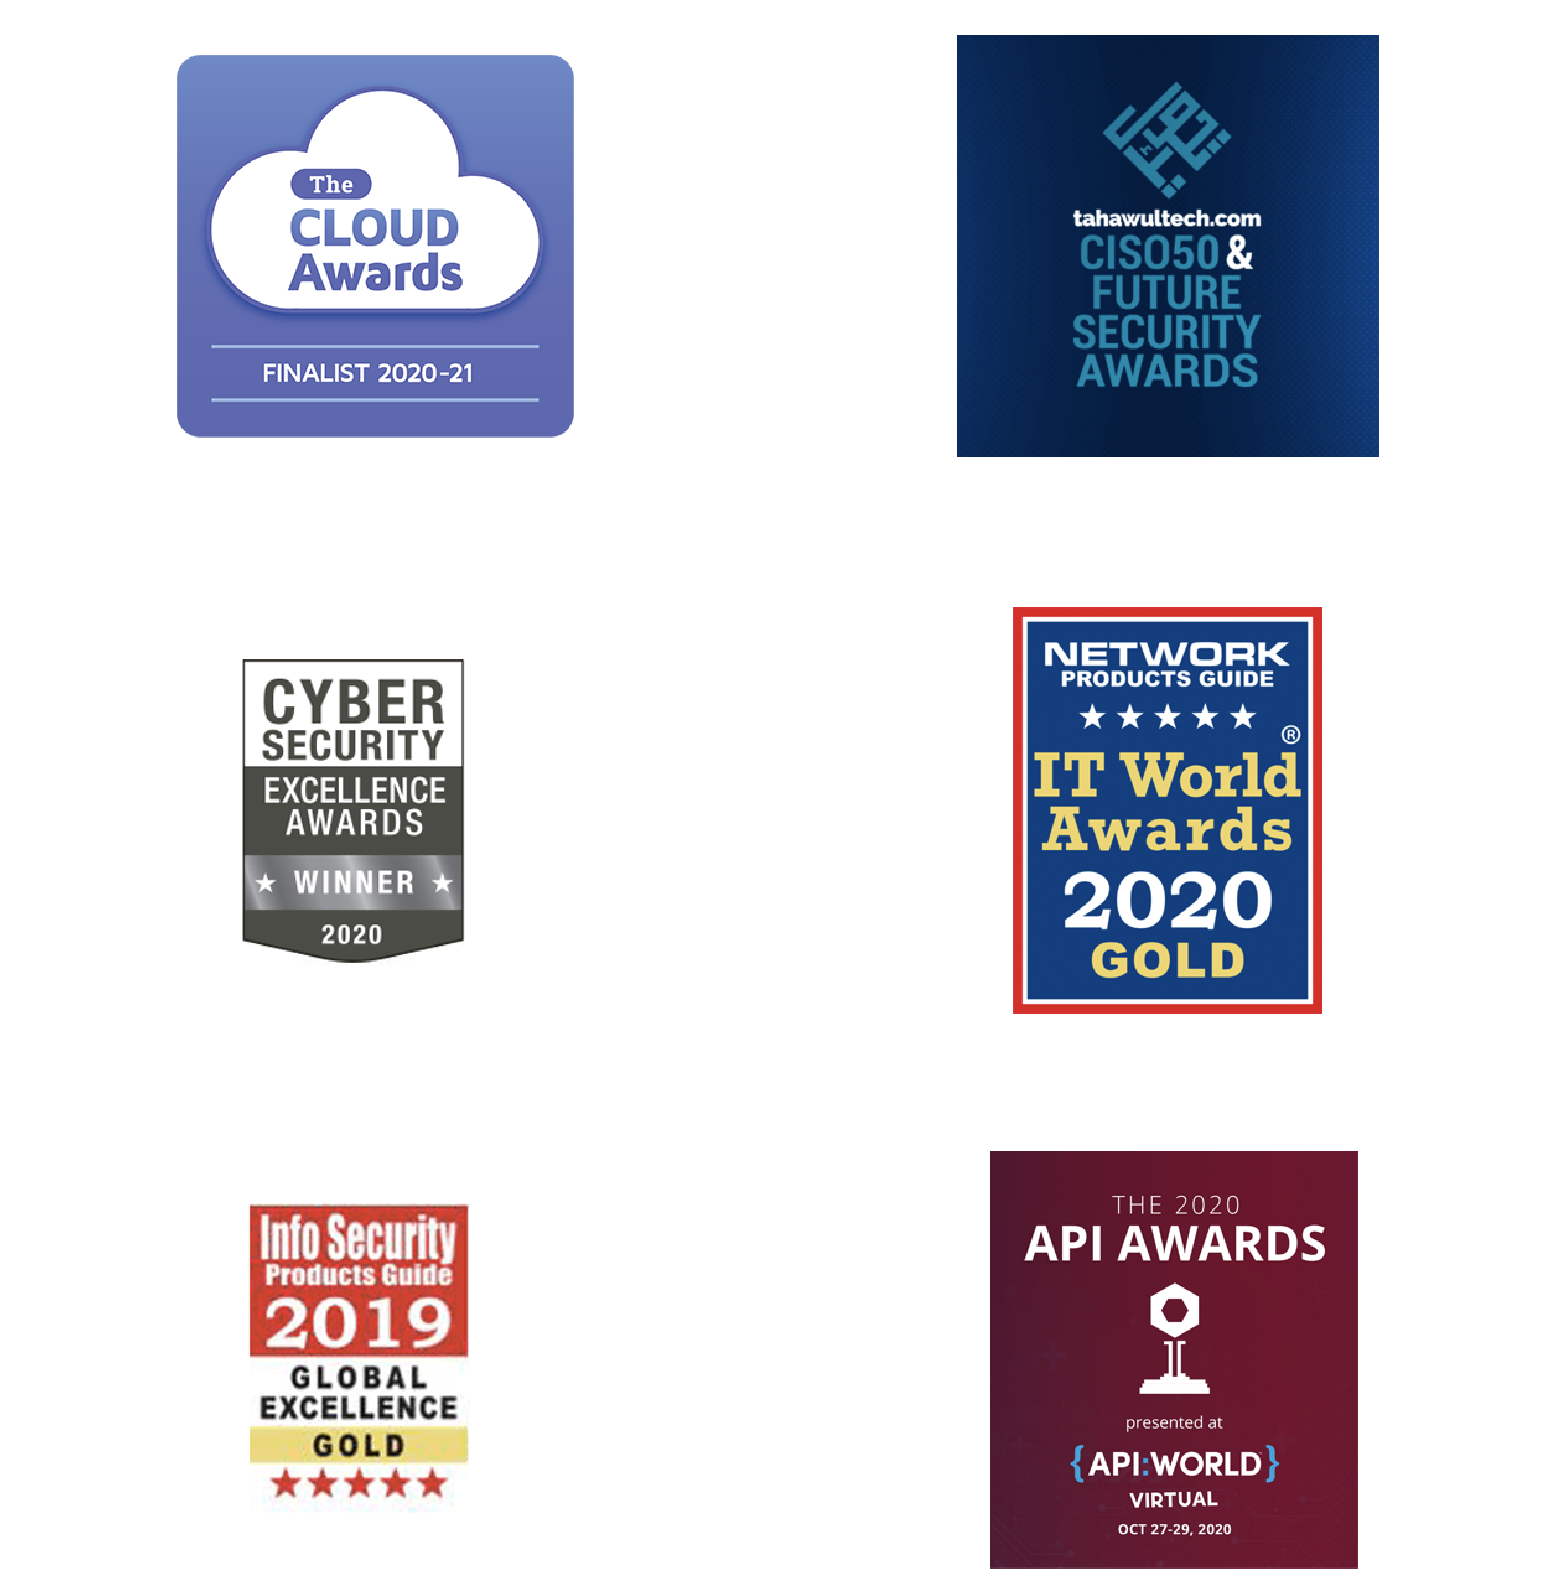 awards given to ping identity graphic